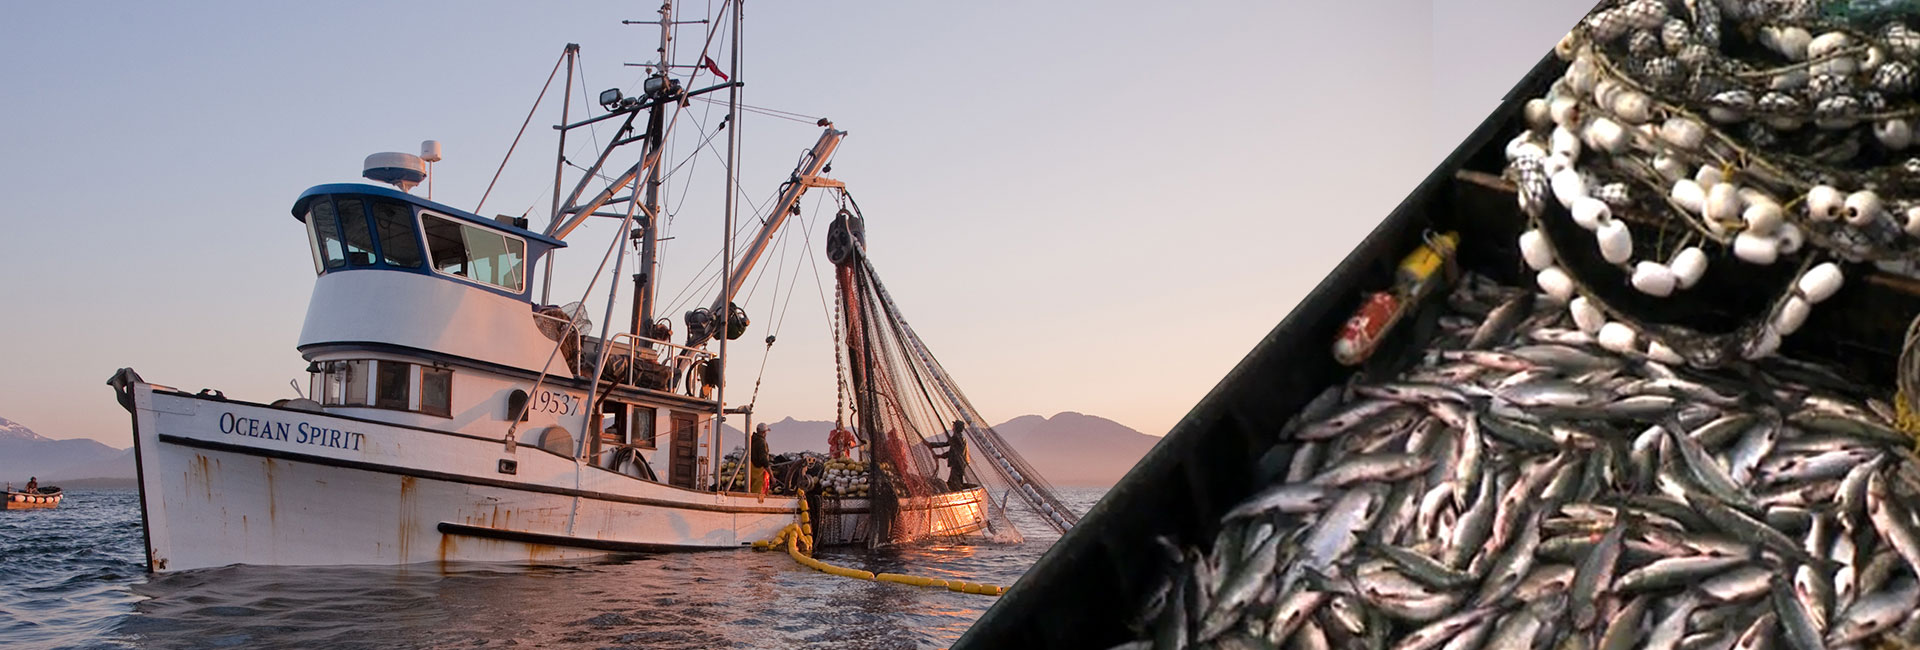 Ketchikan Commercial Seine Fishing: Sunset Catch